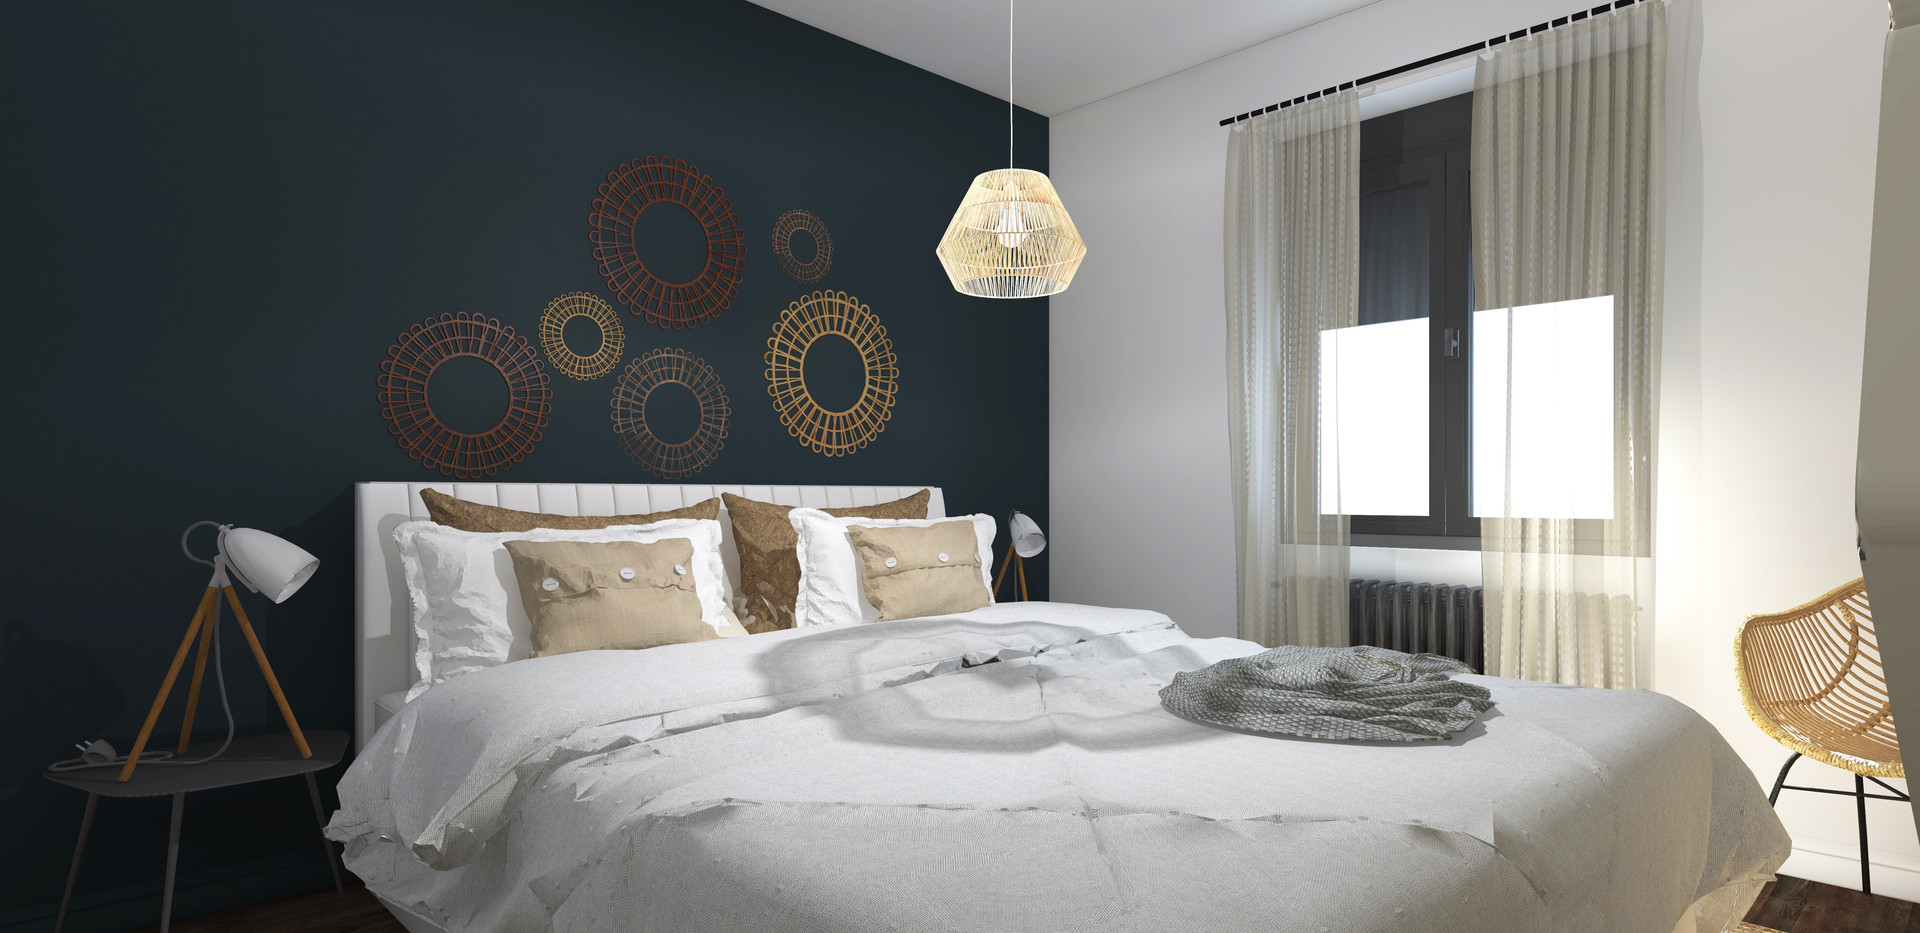 CHAMBRE #inspiration #cocoon